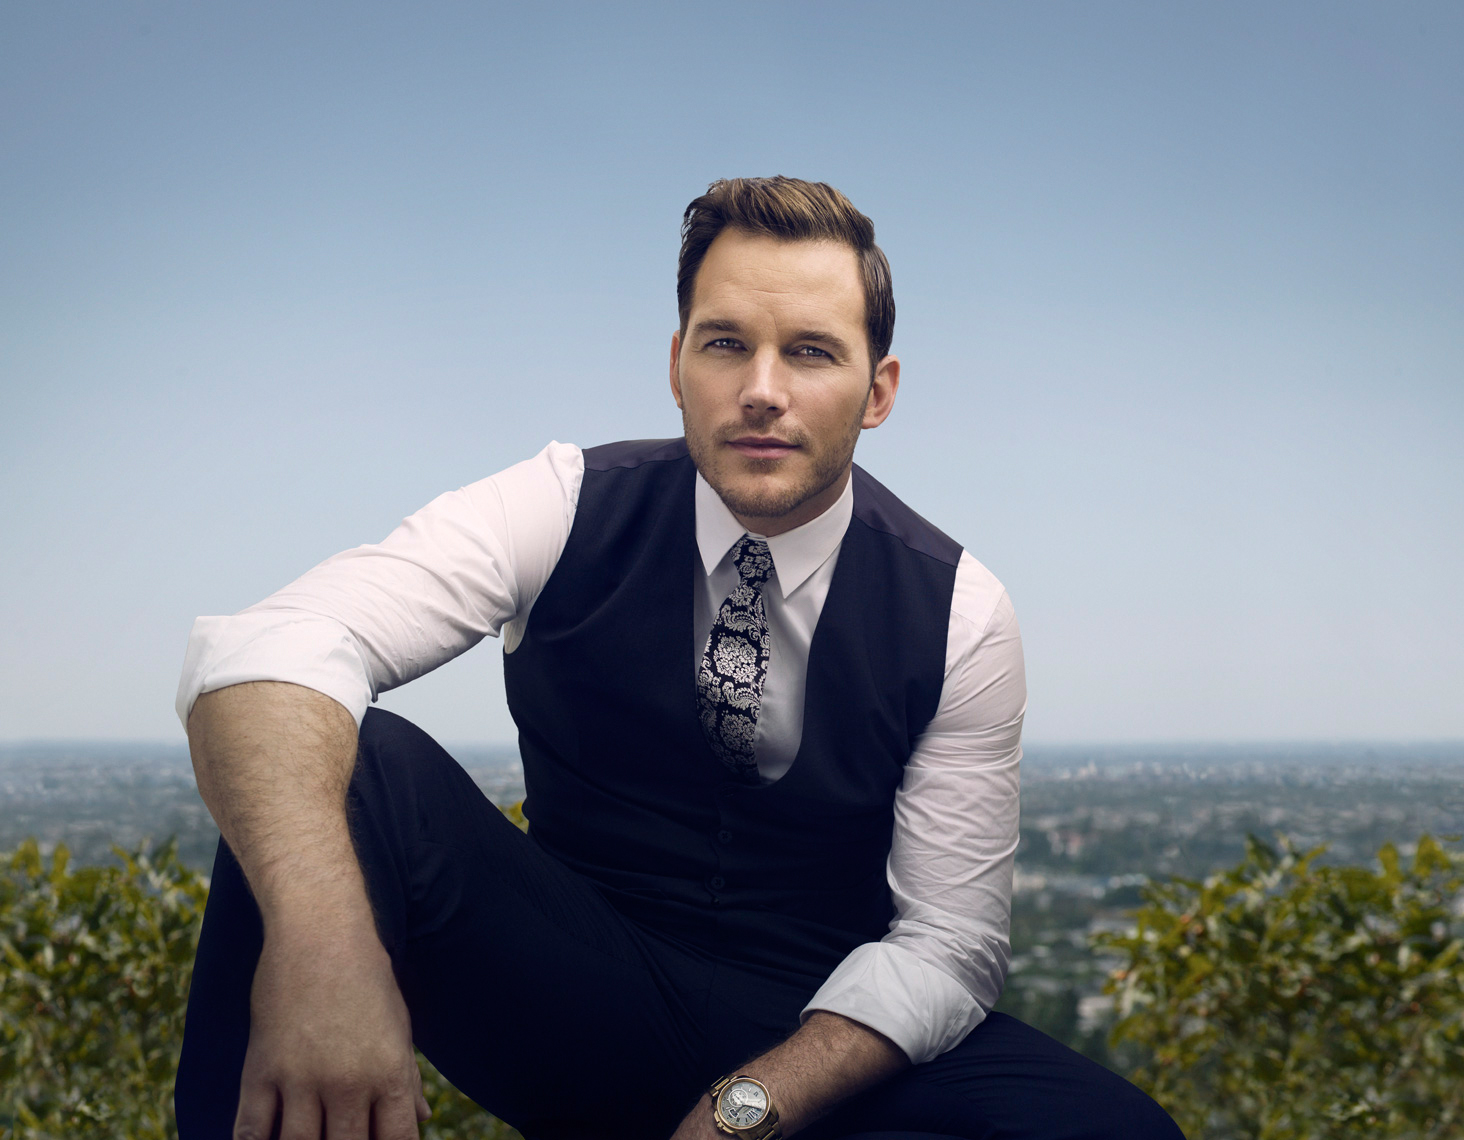 Chris Pratt photo #762504